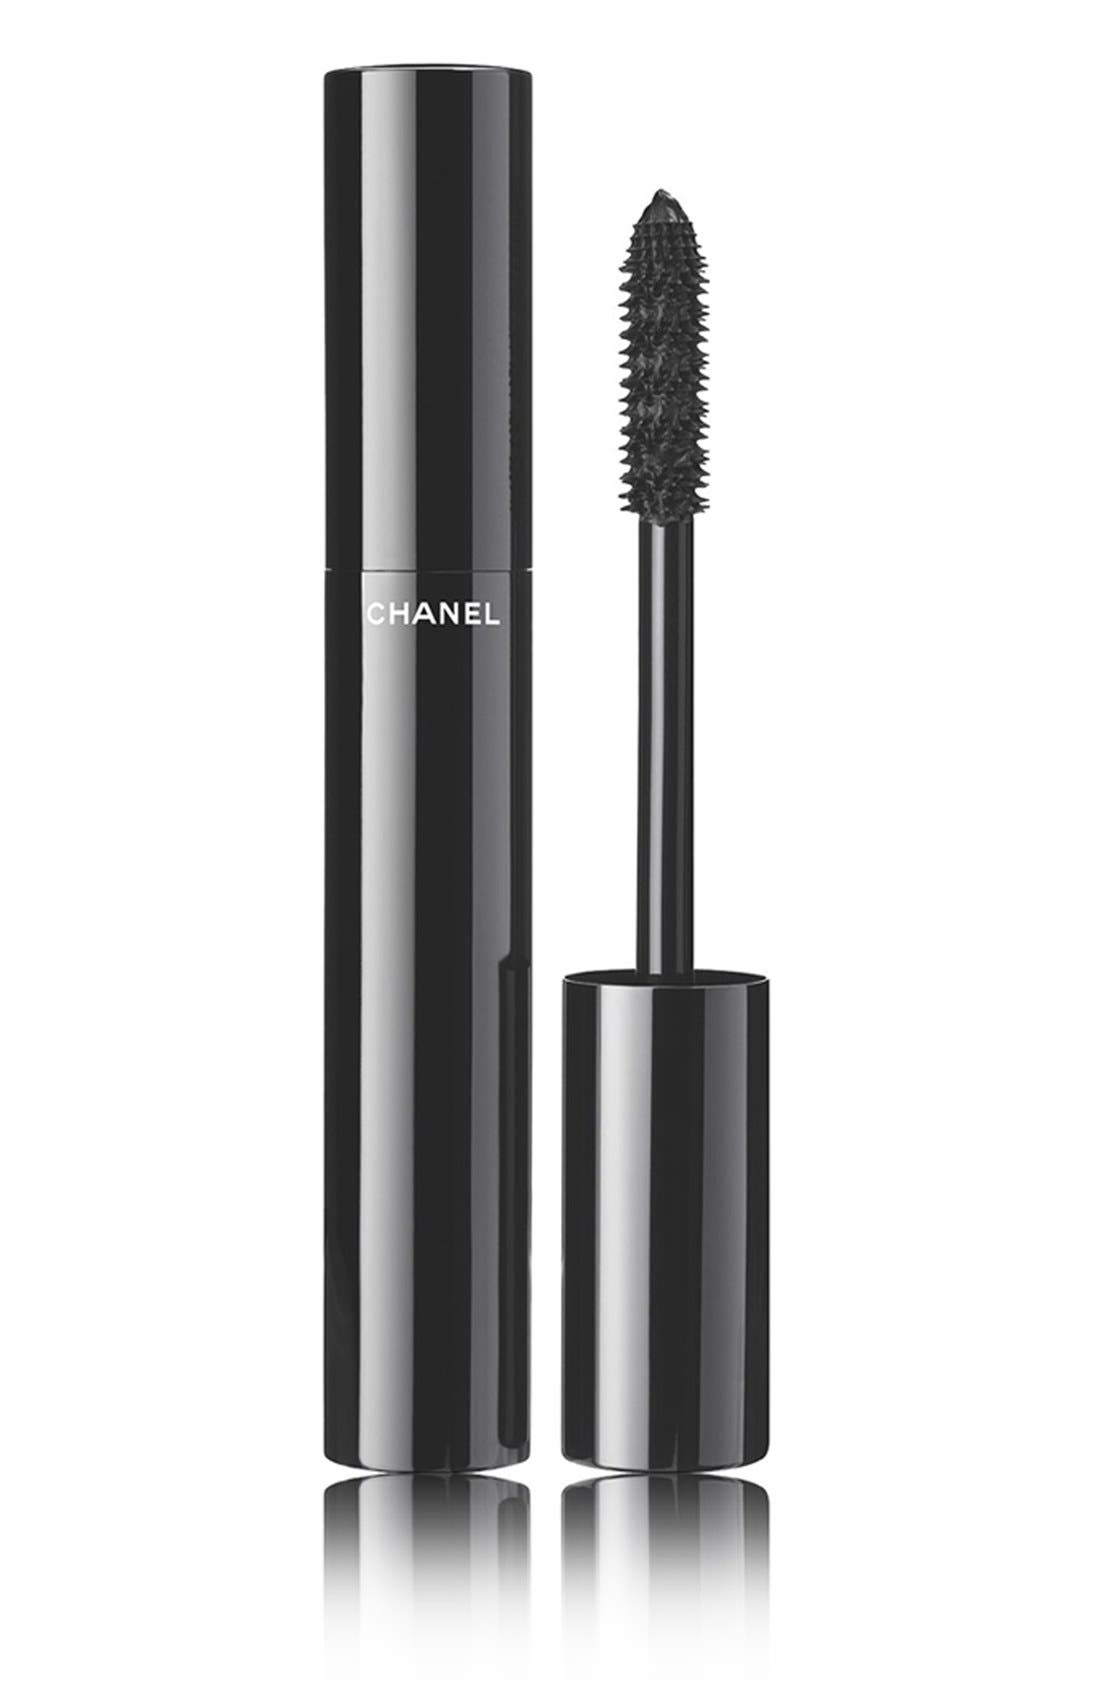 CHANEL LE VOLUME DE CHANEL 